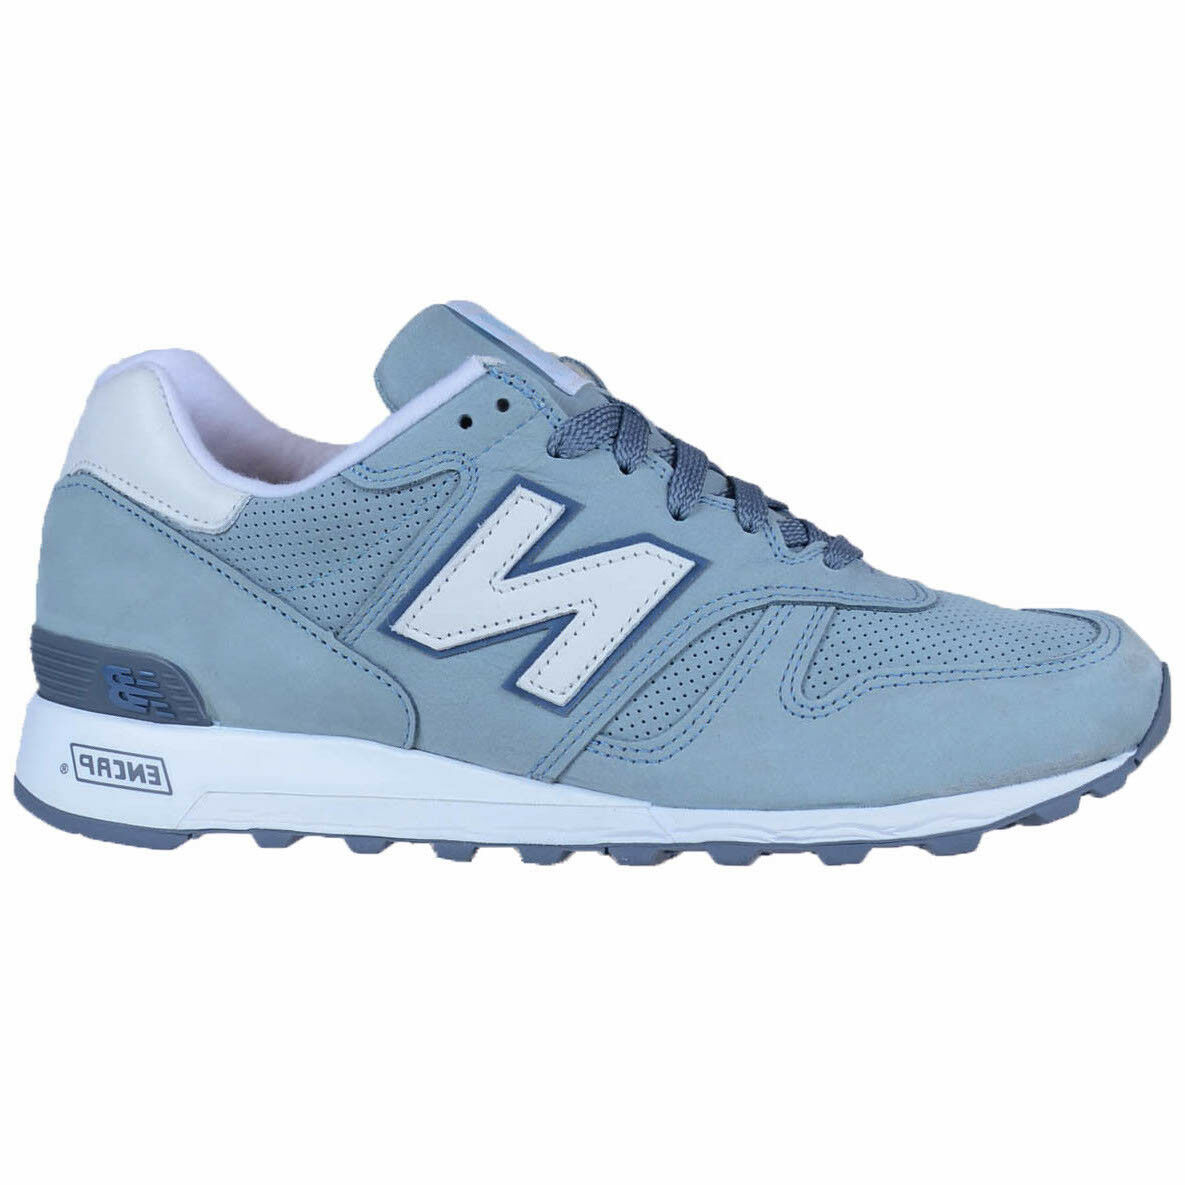 Men's New Balance Made in USA M1300DTO Athletic Fashion Casual Sneakers MSRP 225